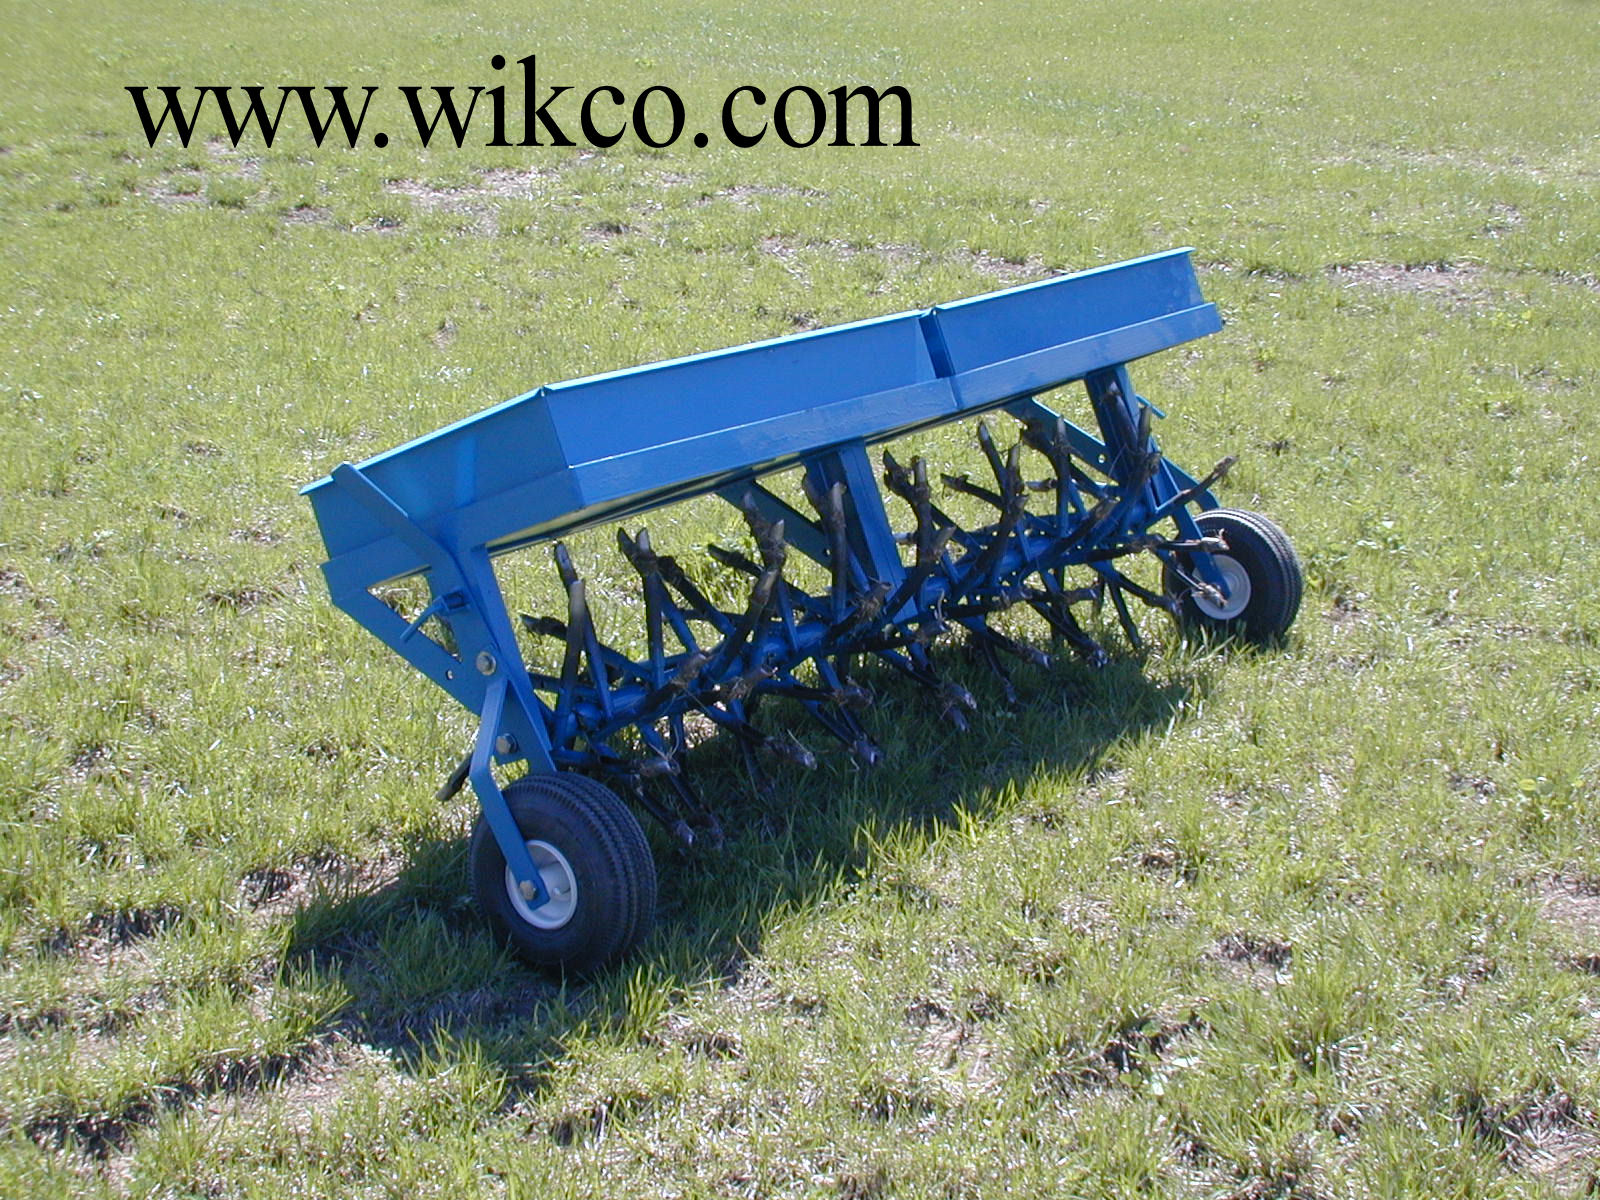 Wikco 60 Inch Wide Tow Behind Lawn Aerator